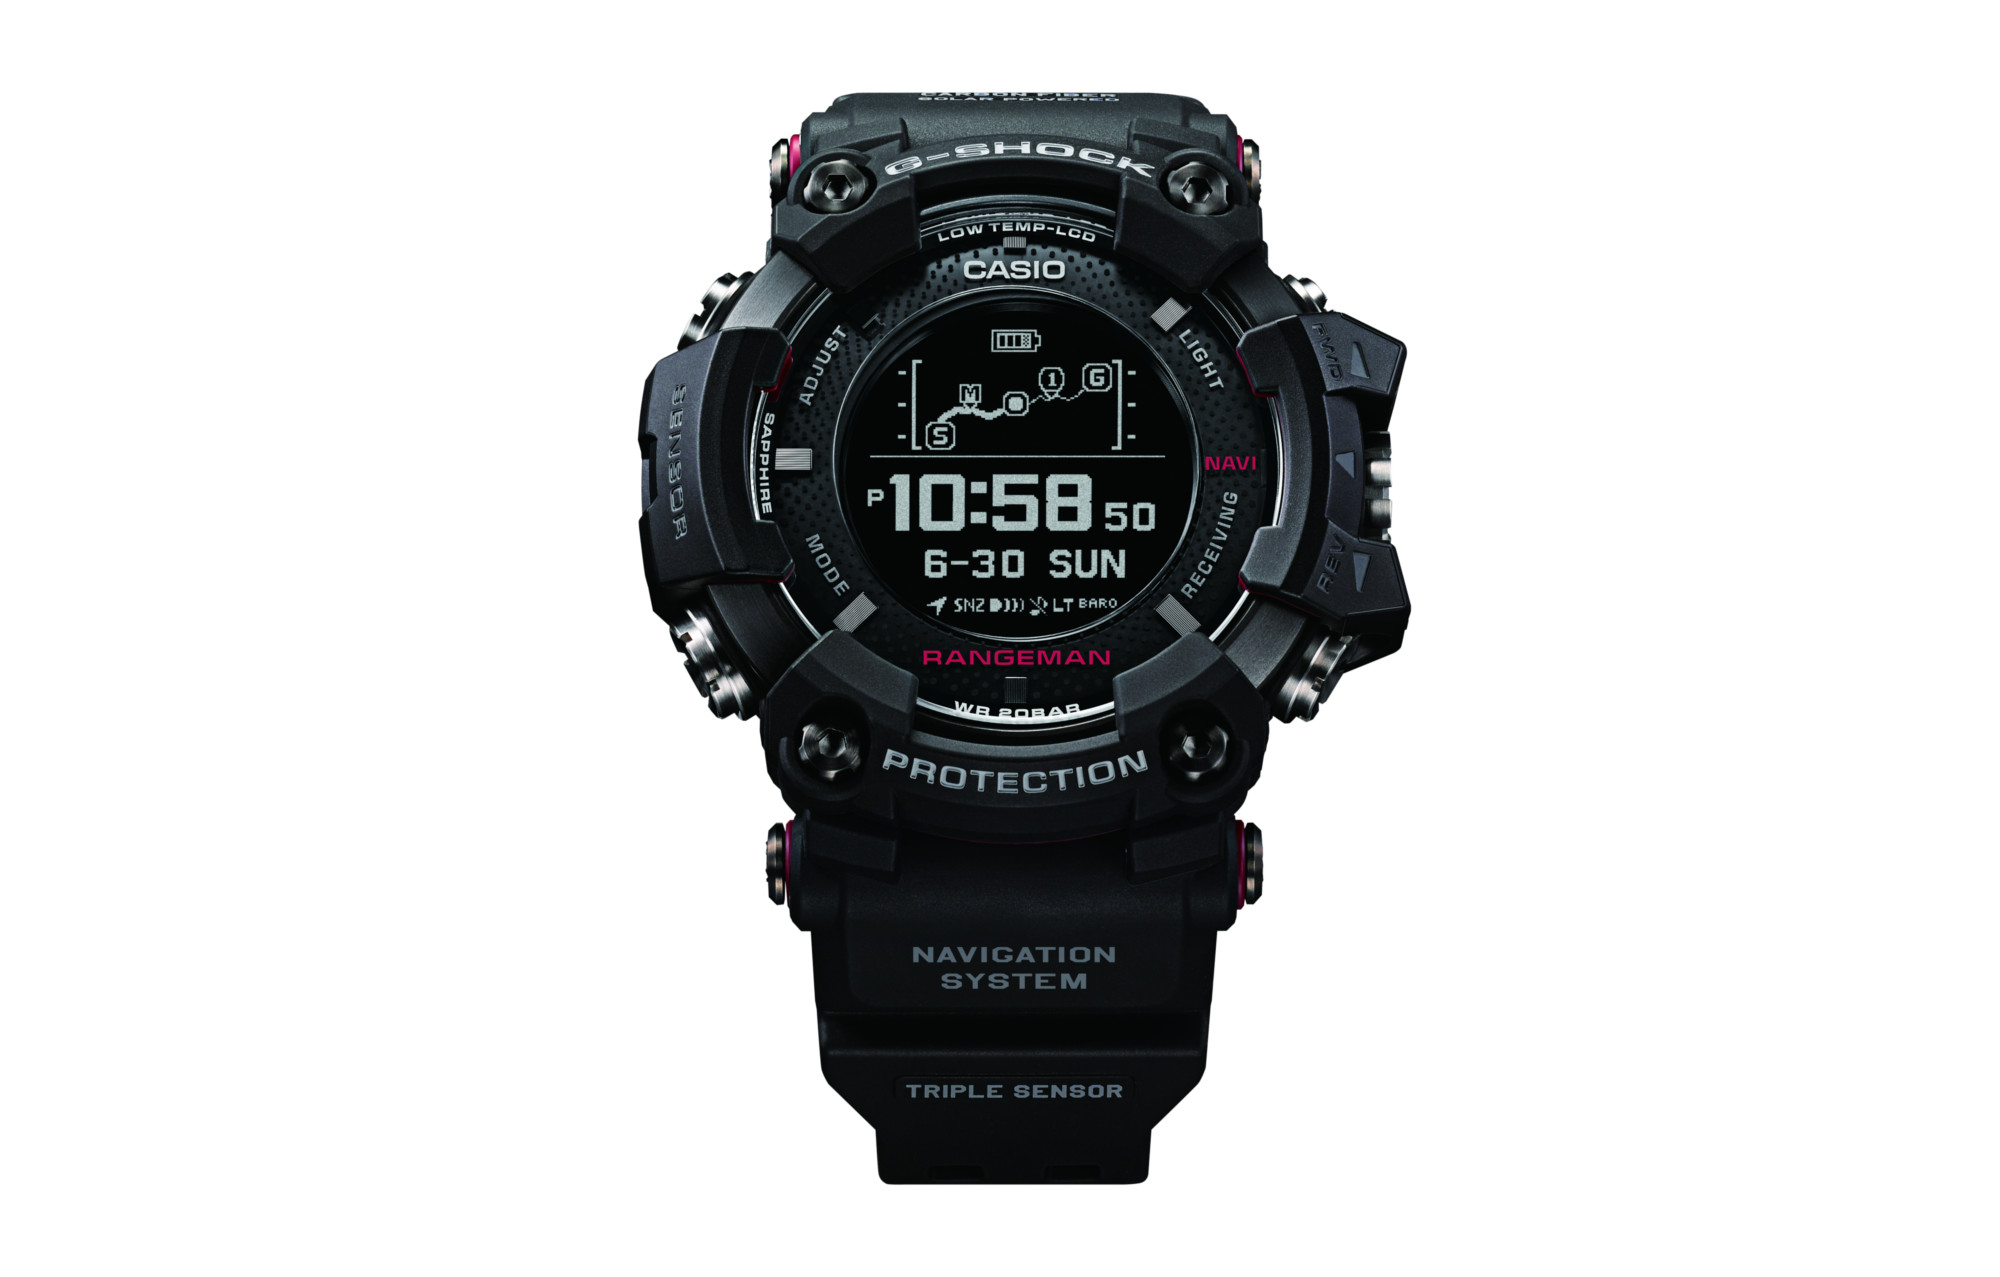 huge discount 42c4a dc87d Casio Rangeman GPR B1000 Outdoor GPS Watch Black